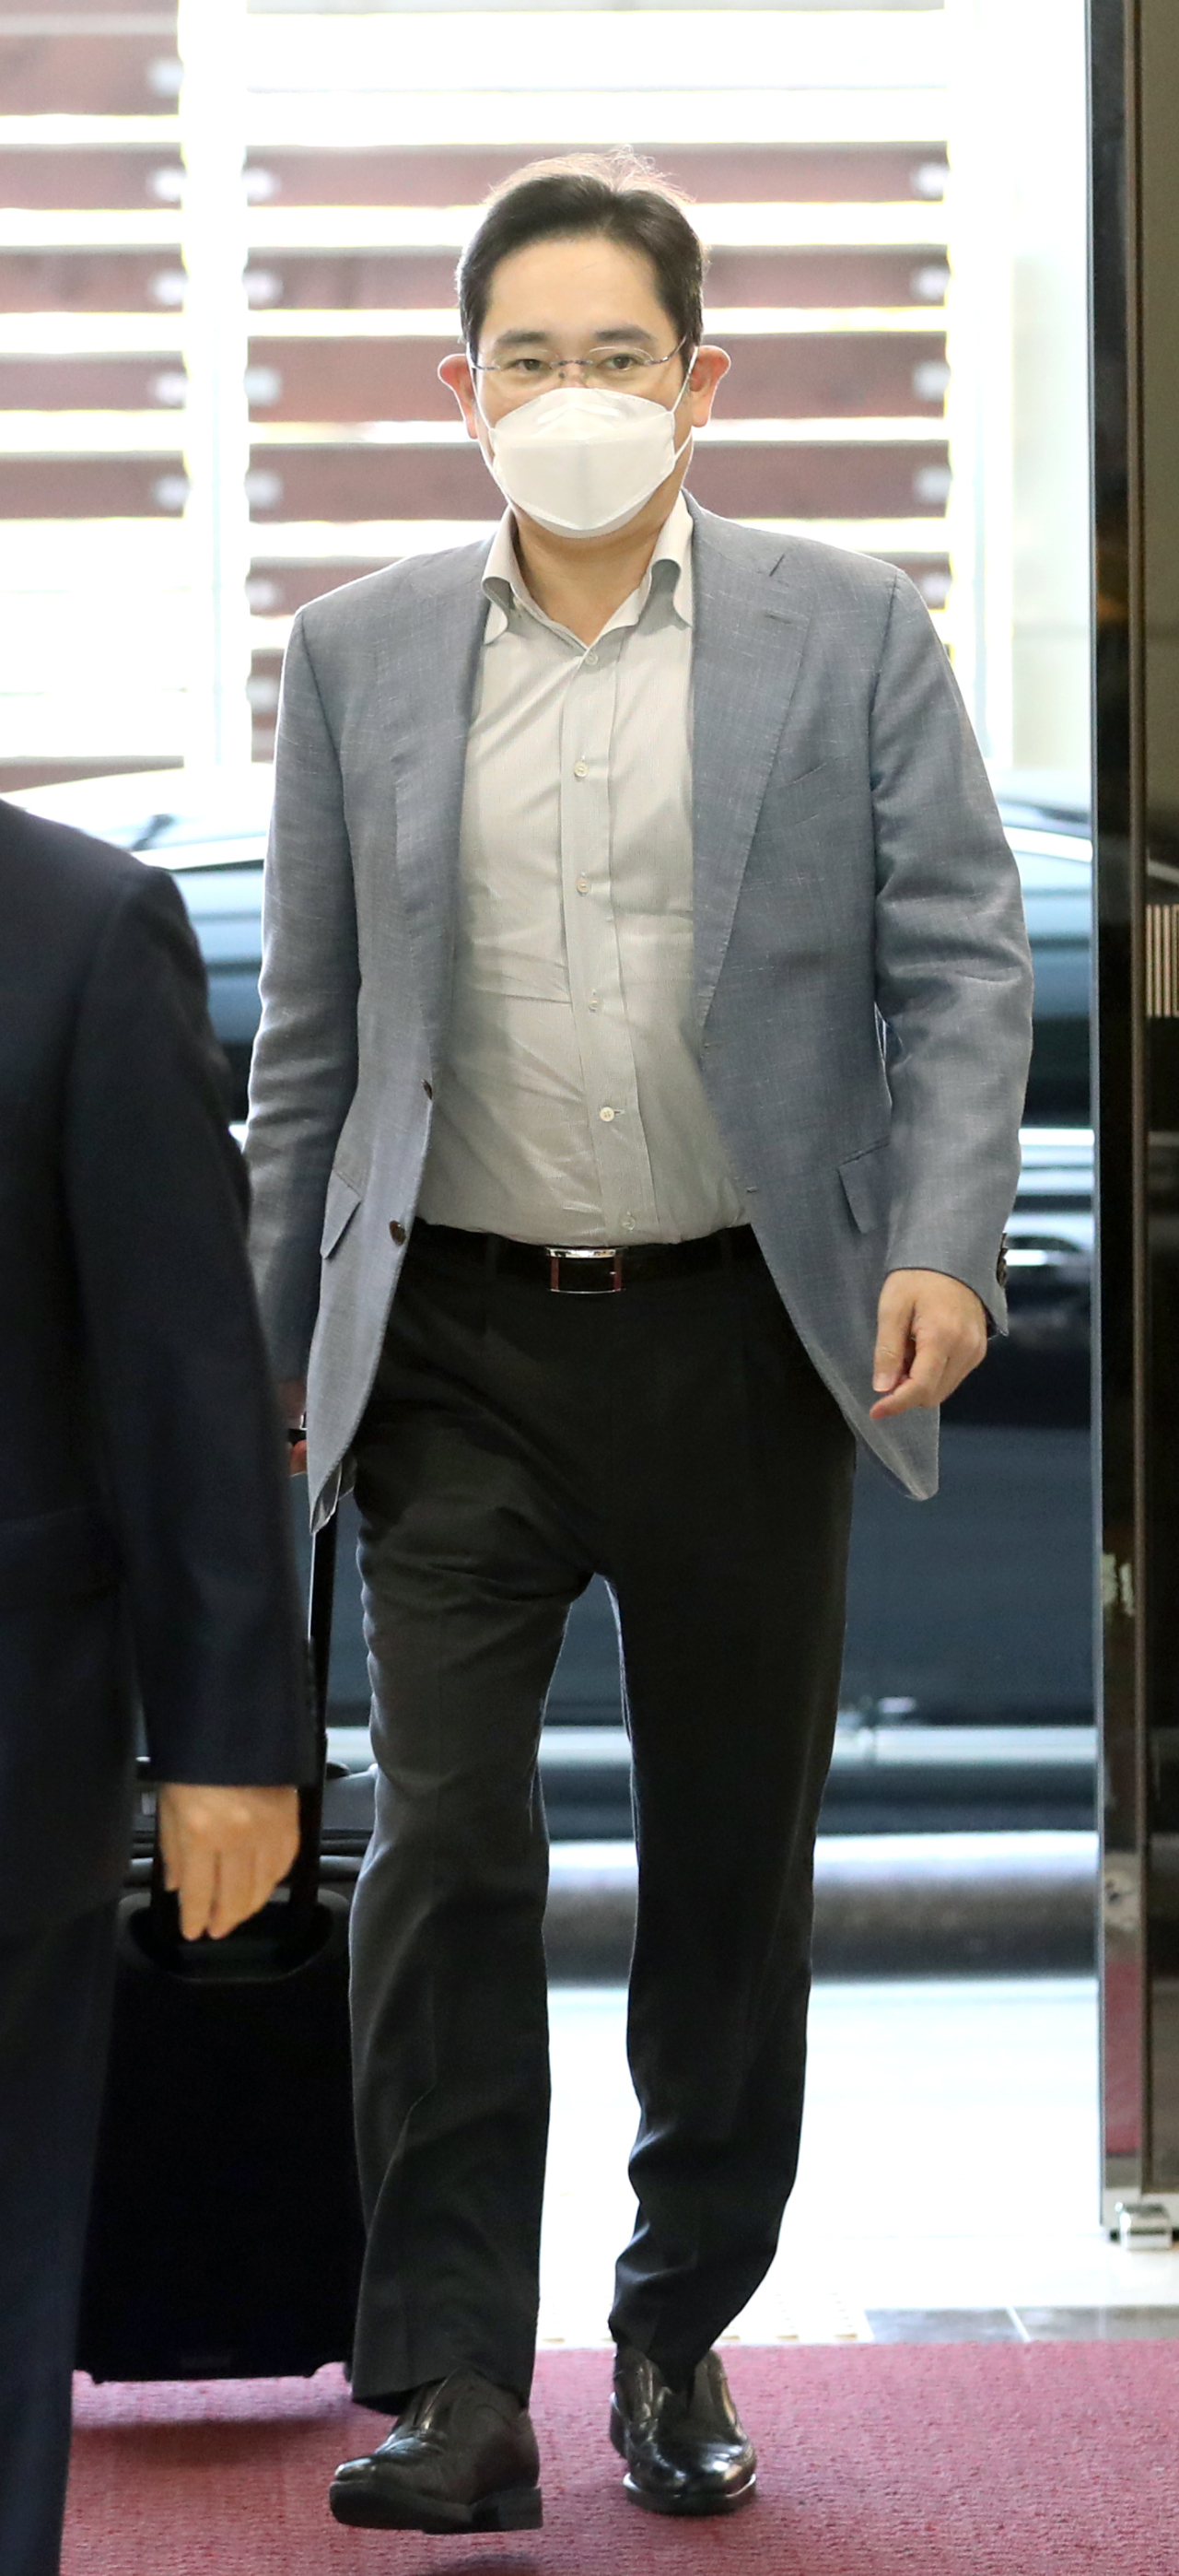 Samsung Electronics Vice Chairman Lee Jae-yong arrives at Gimpo International Airport in Seoul on Monday following his business trip to Europe on Wednesday. (Yonhap)